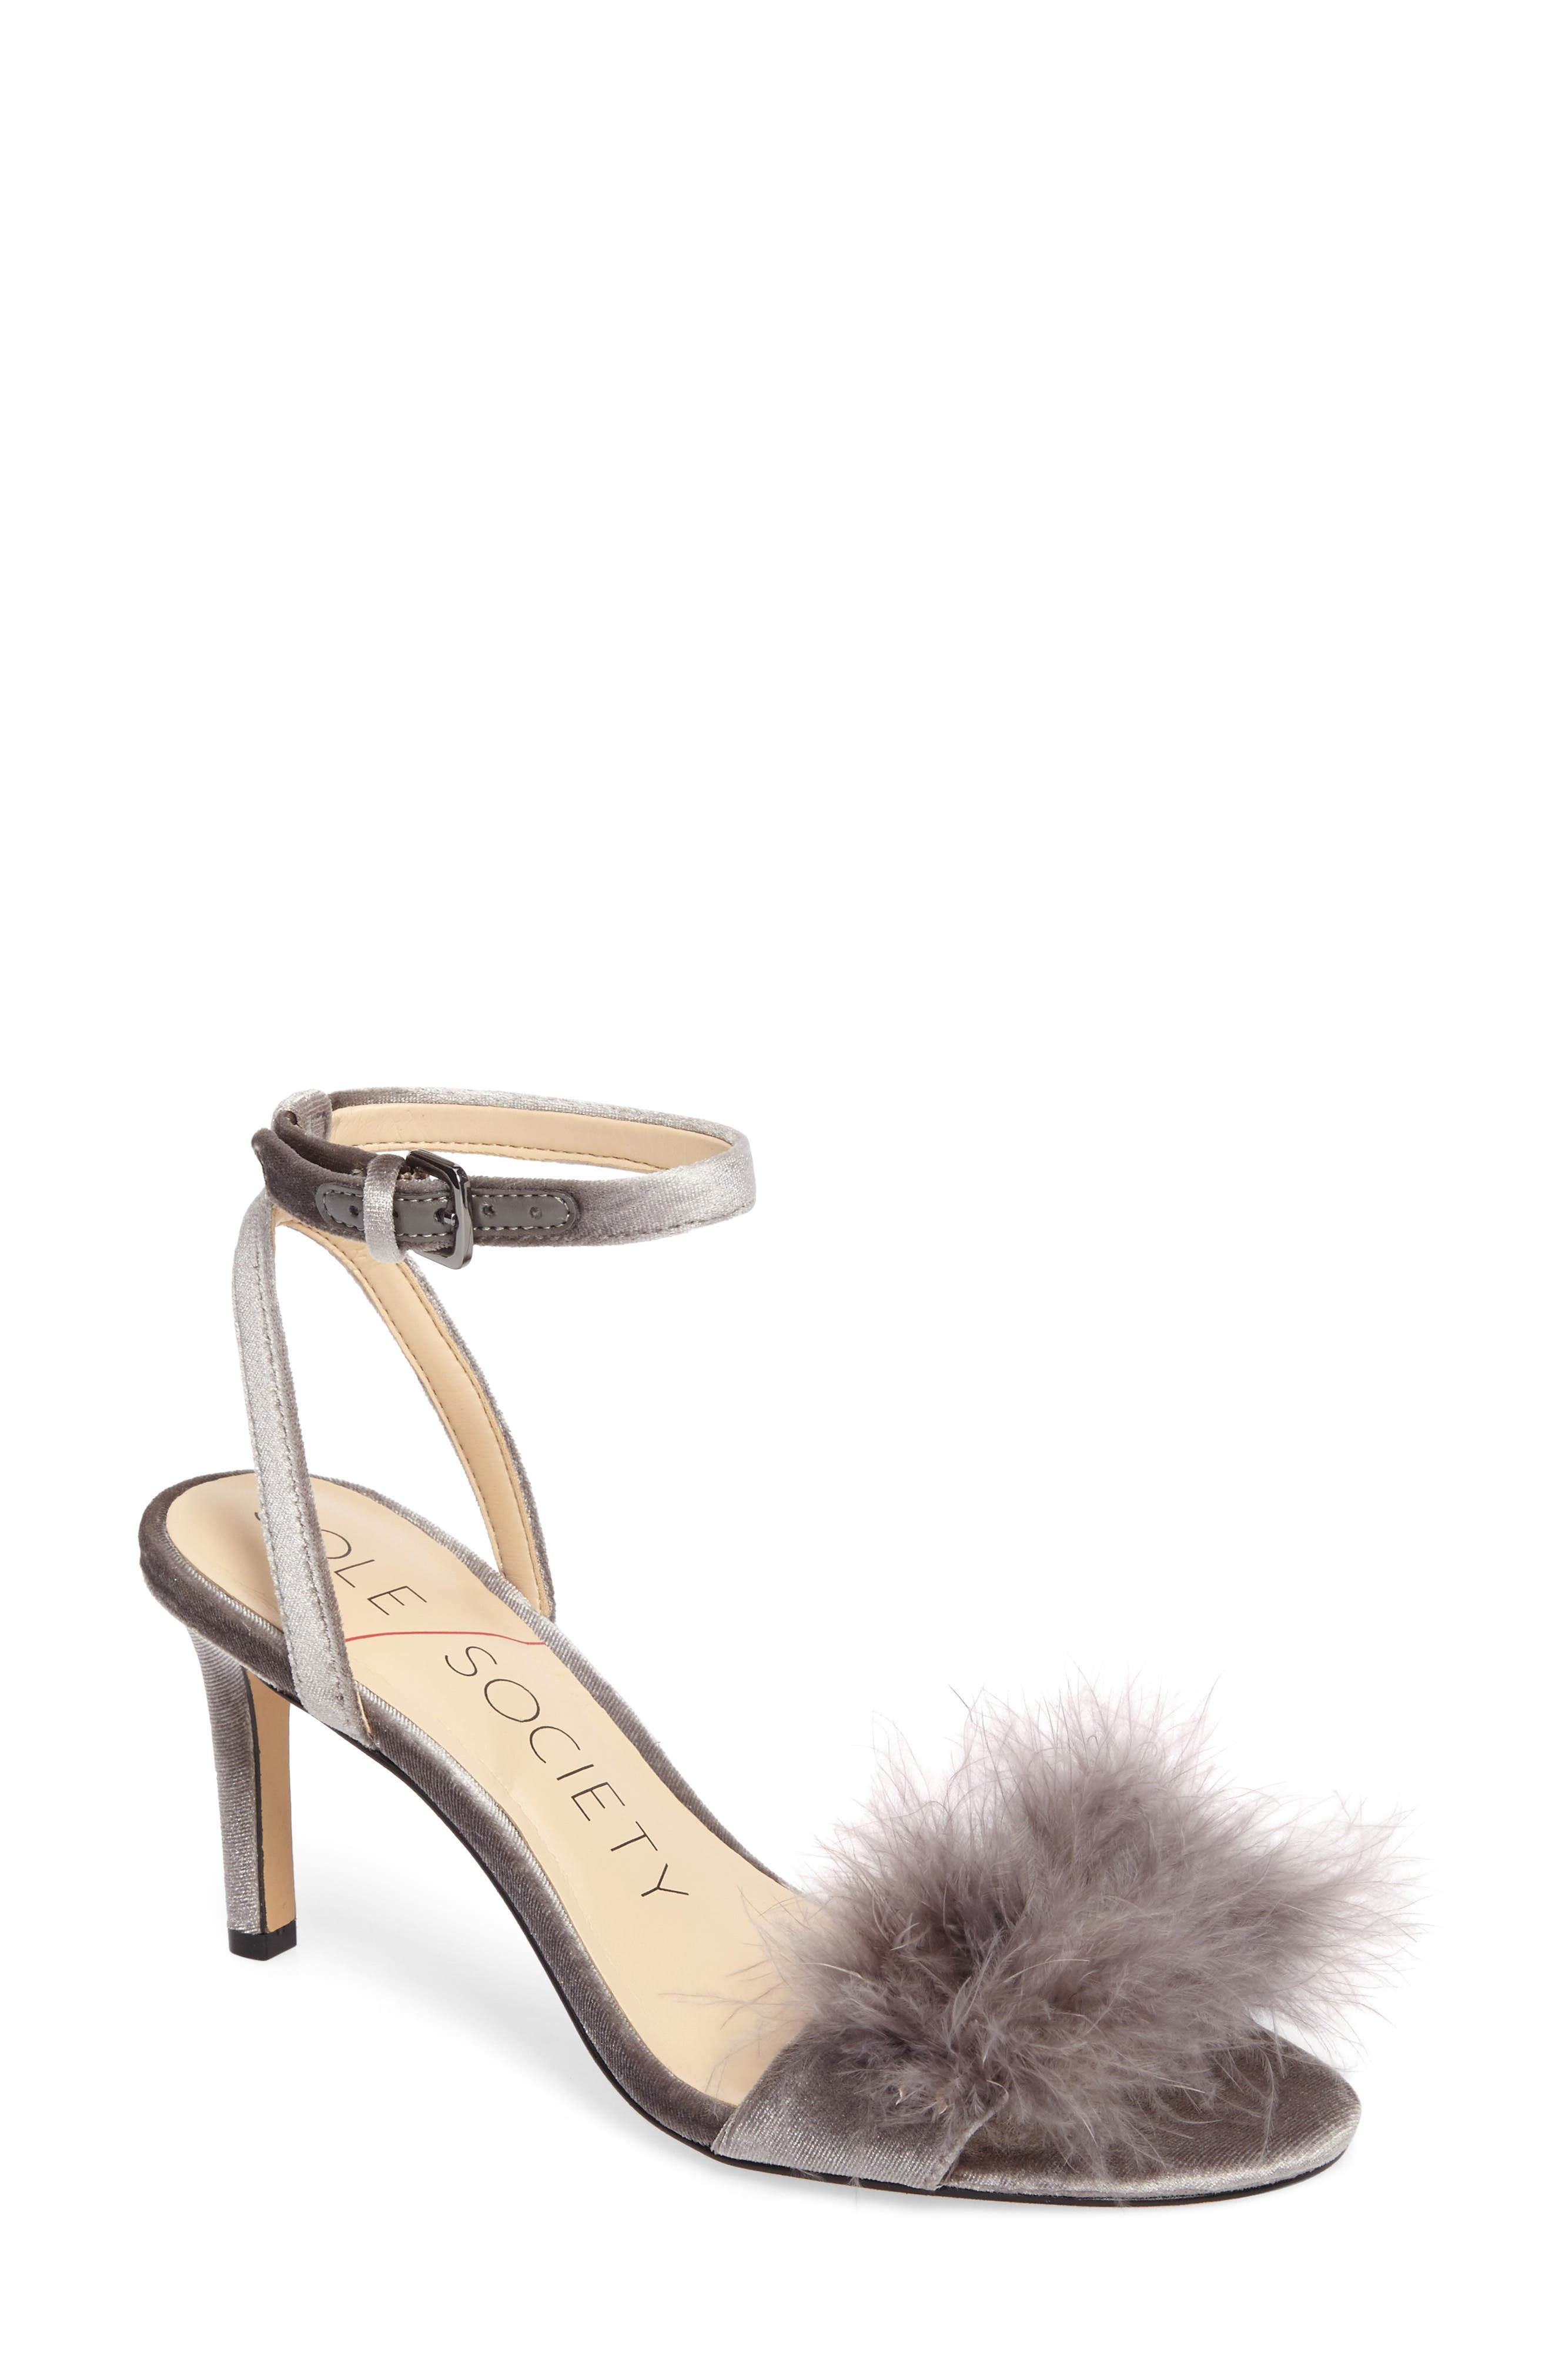 Alternate Image 1 Selected - Sole Society Lindzay Feather Sandal (Women)